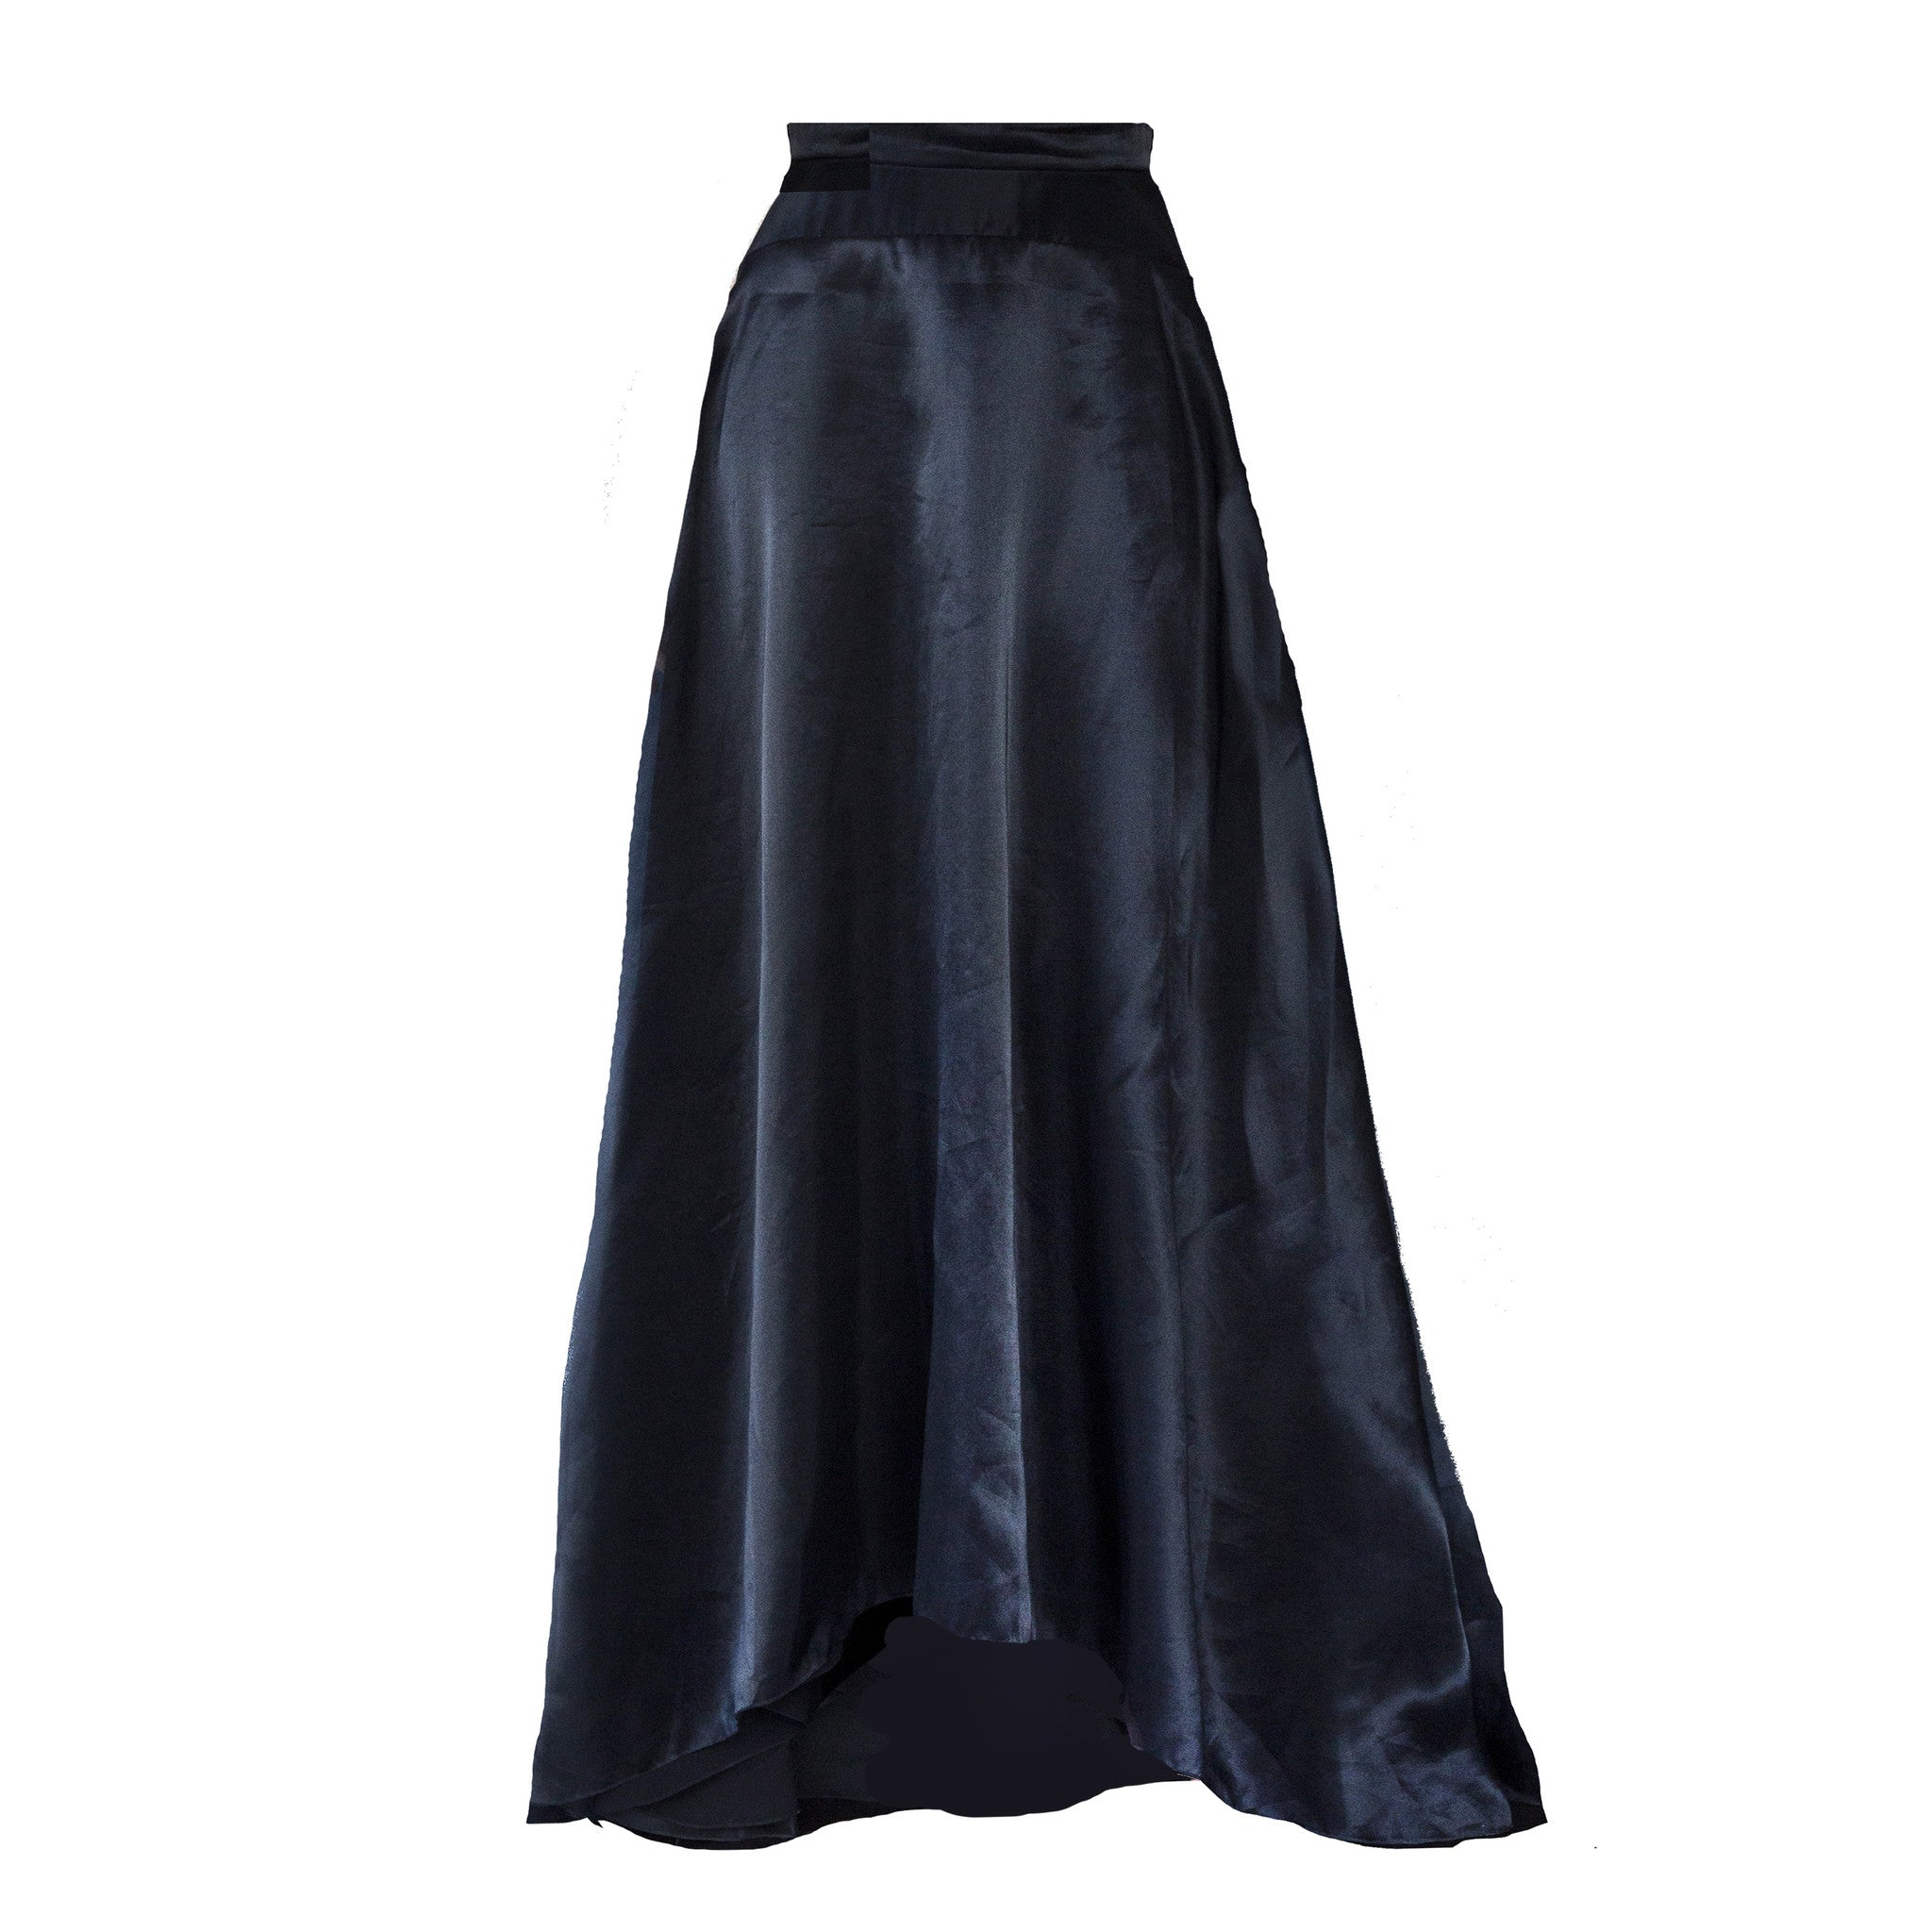 Liukin Skirt in Black